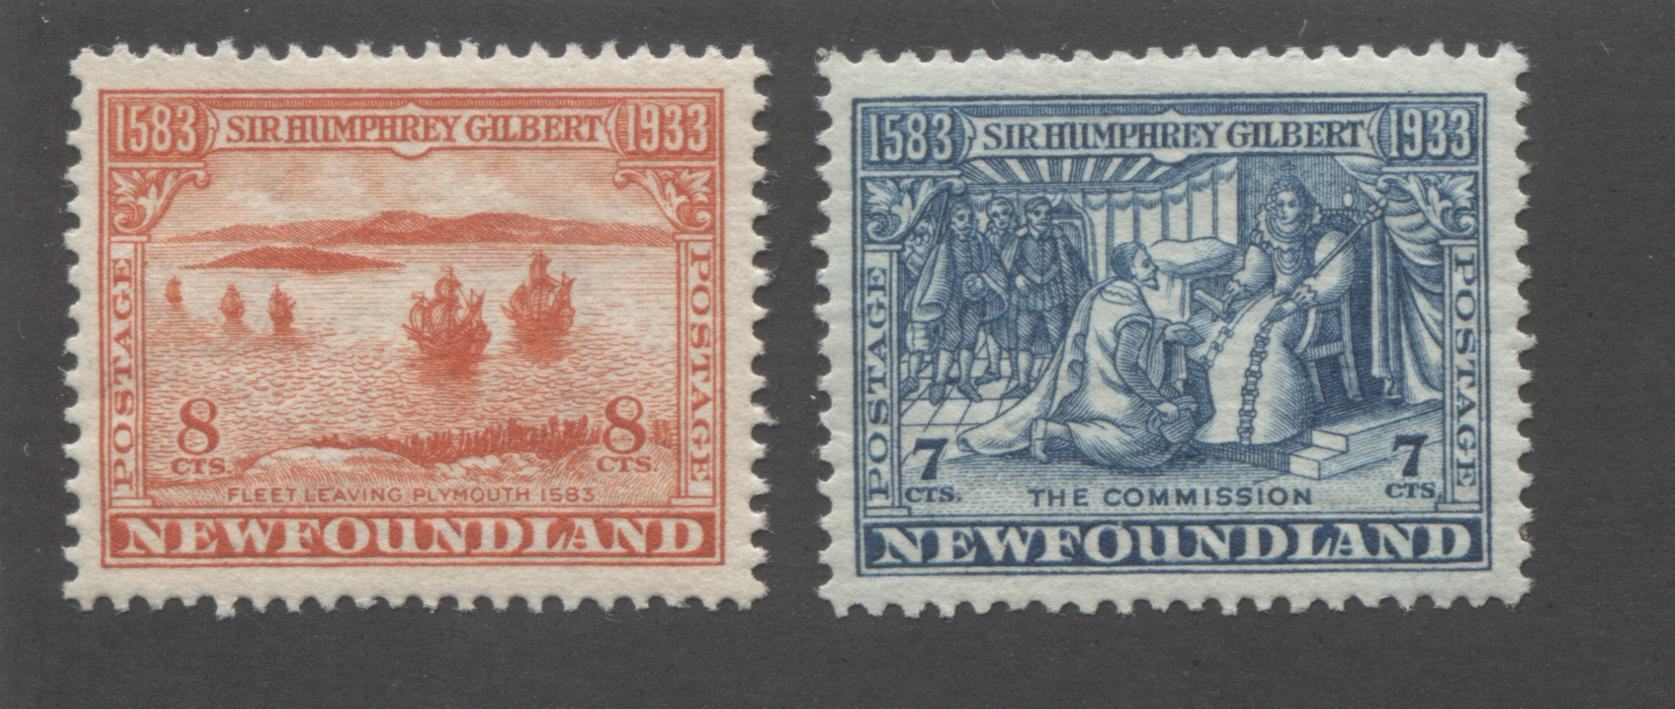 Newfoundland #217-218 8c Deep Orange Red and 7c Prussian Blue Fleet Leaving Plymouth & The Commission, 1933 Sir Humphrey Gilbert Issue Very Fine Mint OG Singles, Comb Perf. 13.5 x 13.6 and 13.5 Brixton Chrome